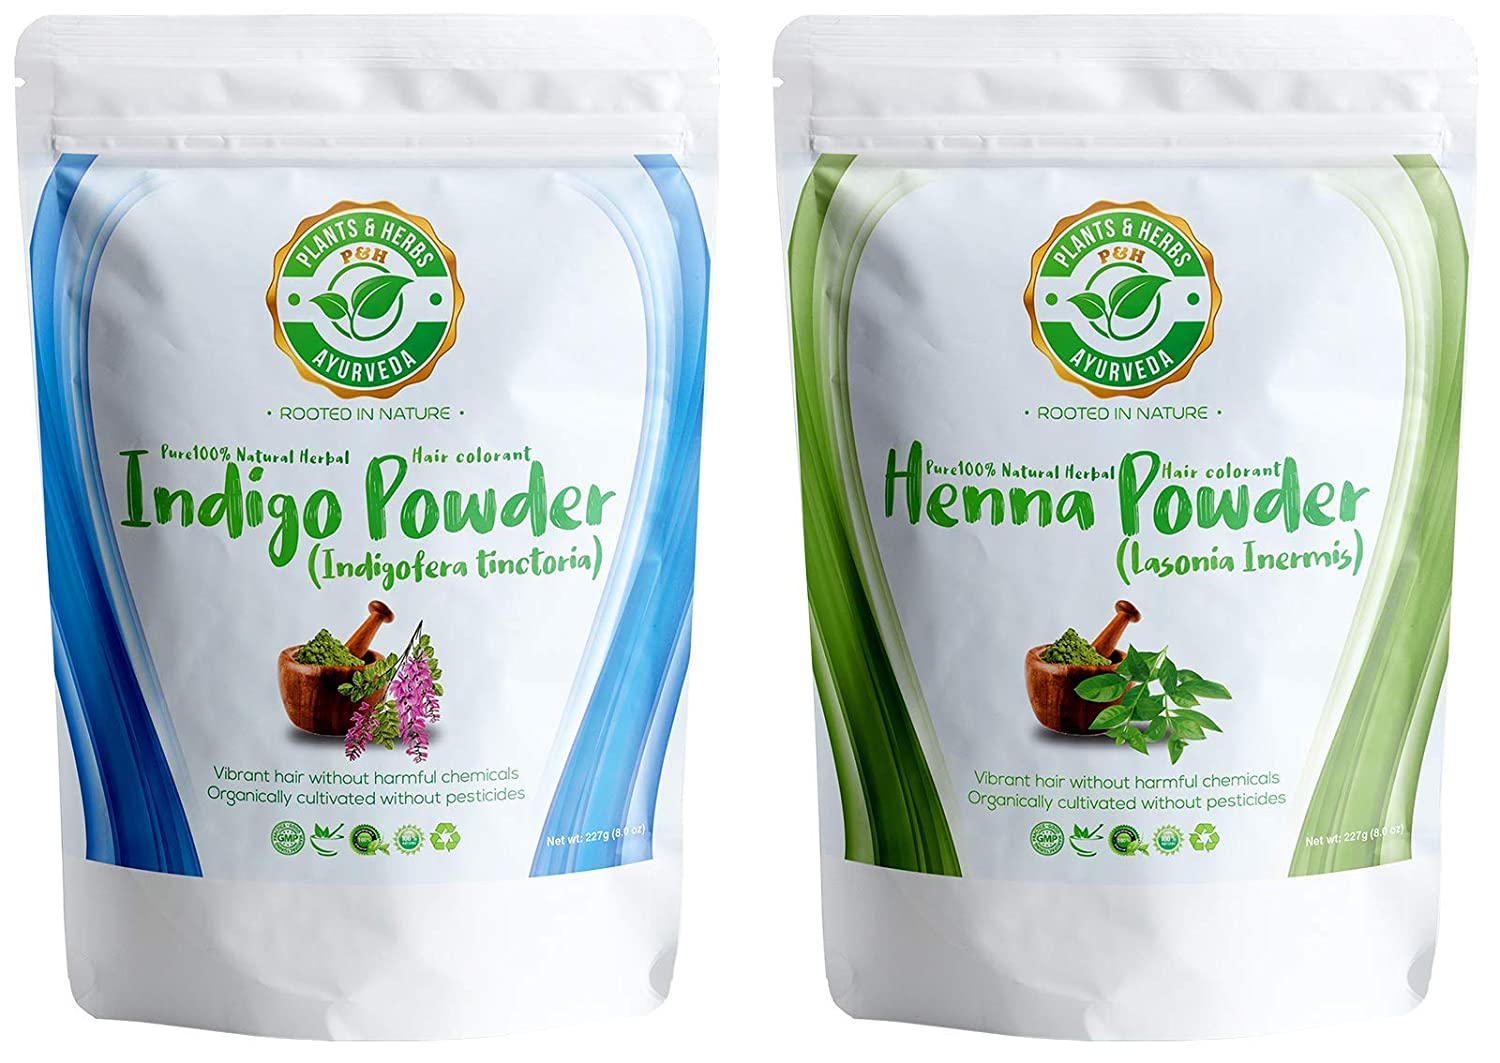 Plants & Herbs Ayurveda 100% Pure Herbal Indigo and Henna (Mehndi) Powder Dye For Natural Shades of Brown and Black Hair and Beards — 8oz / 227g each — Organic, Chemical-free, PPD-free, Ammonia-free